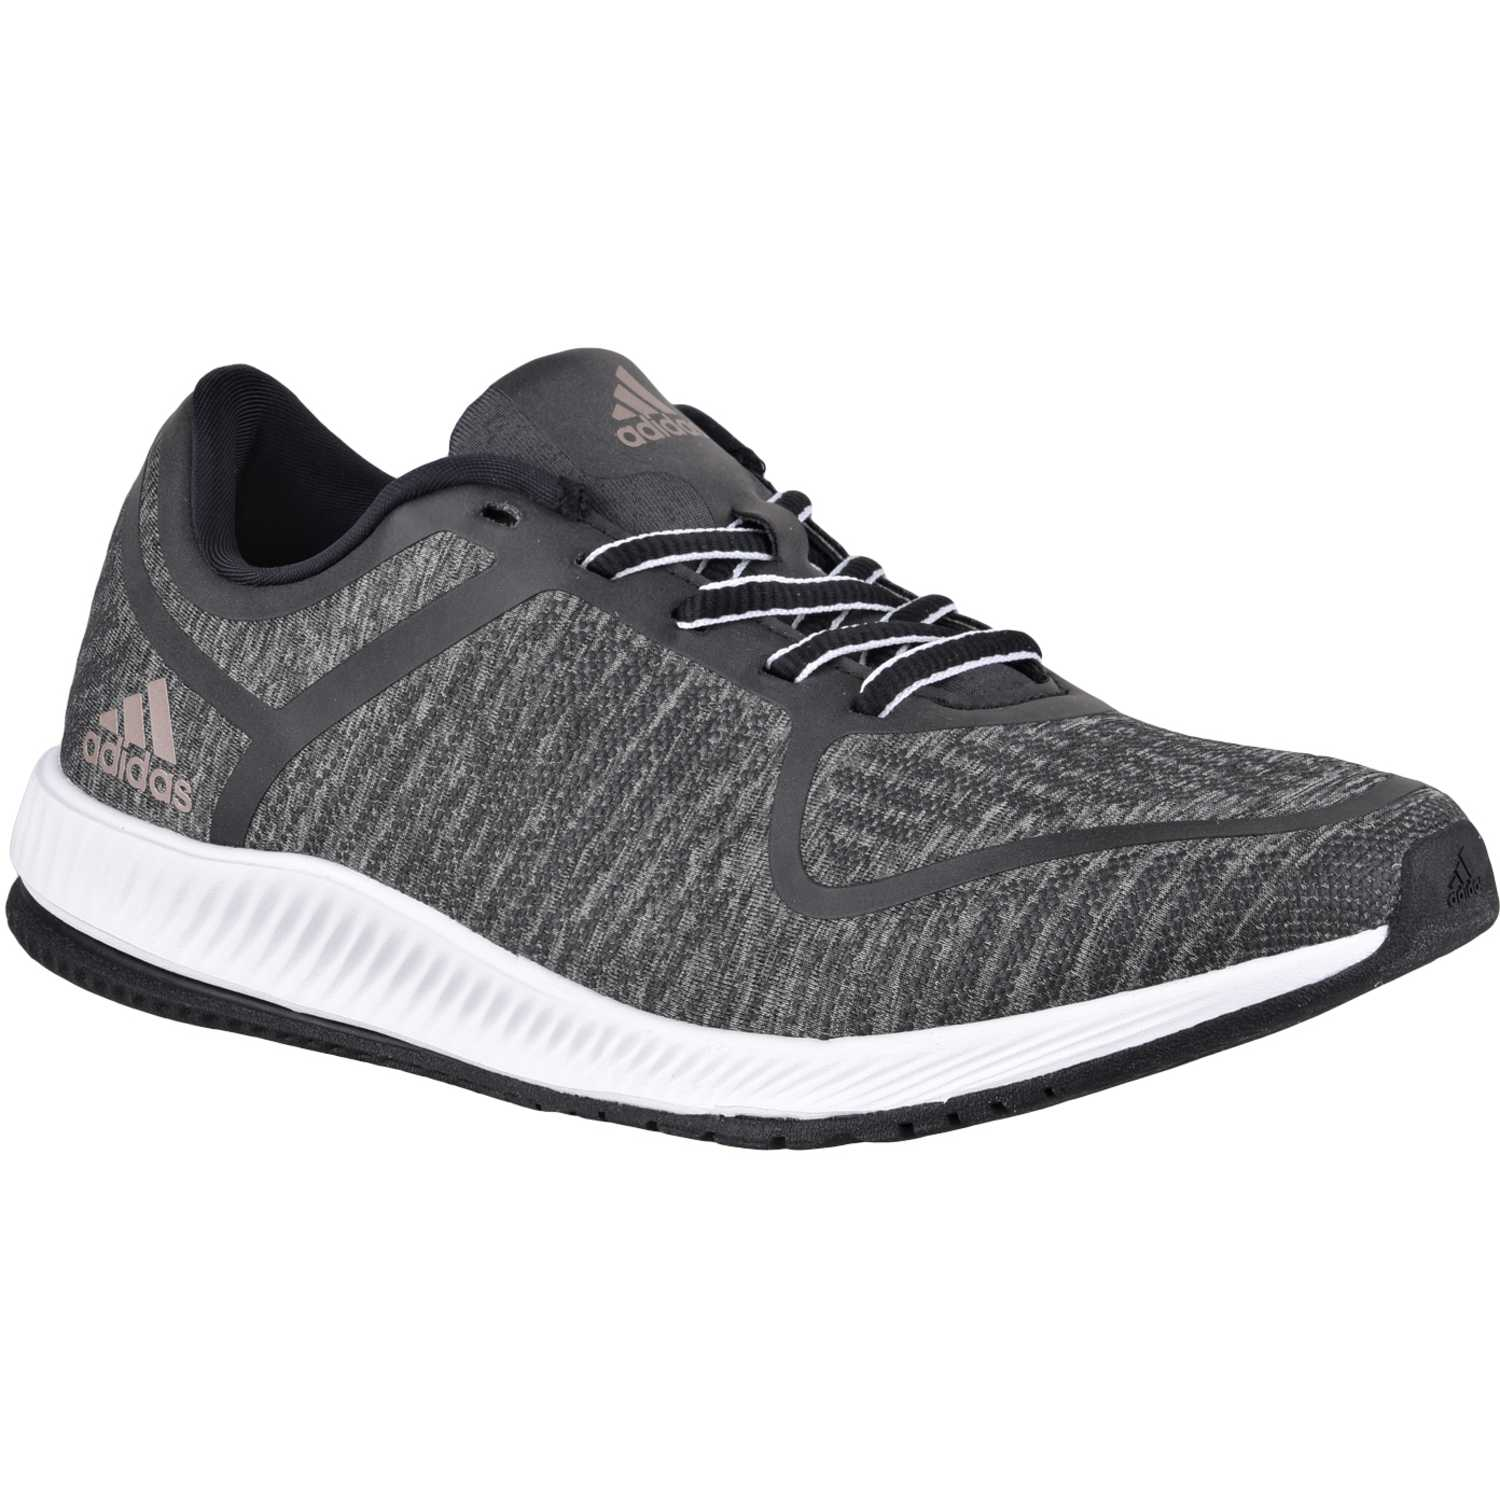 Adidas athletics b w Gris oscuro Mujeres